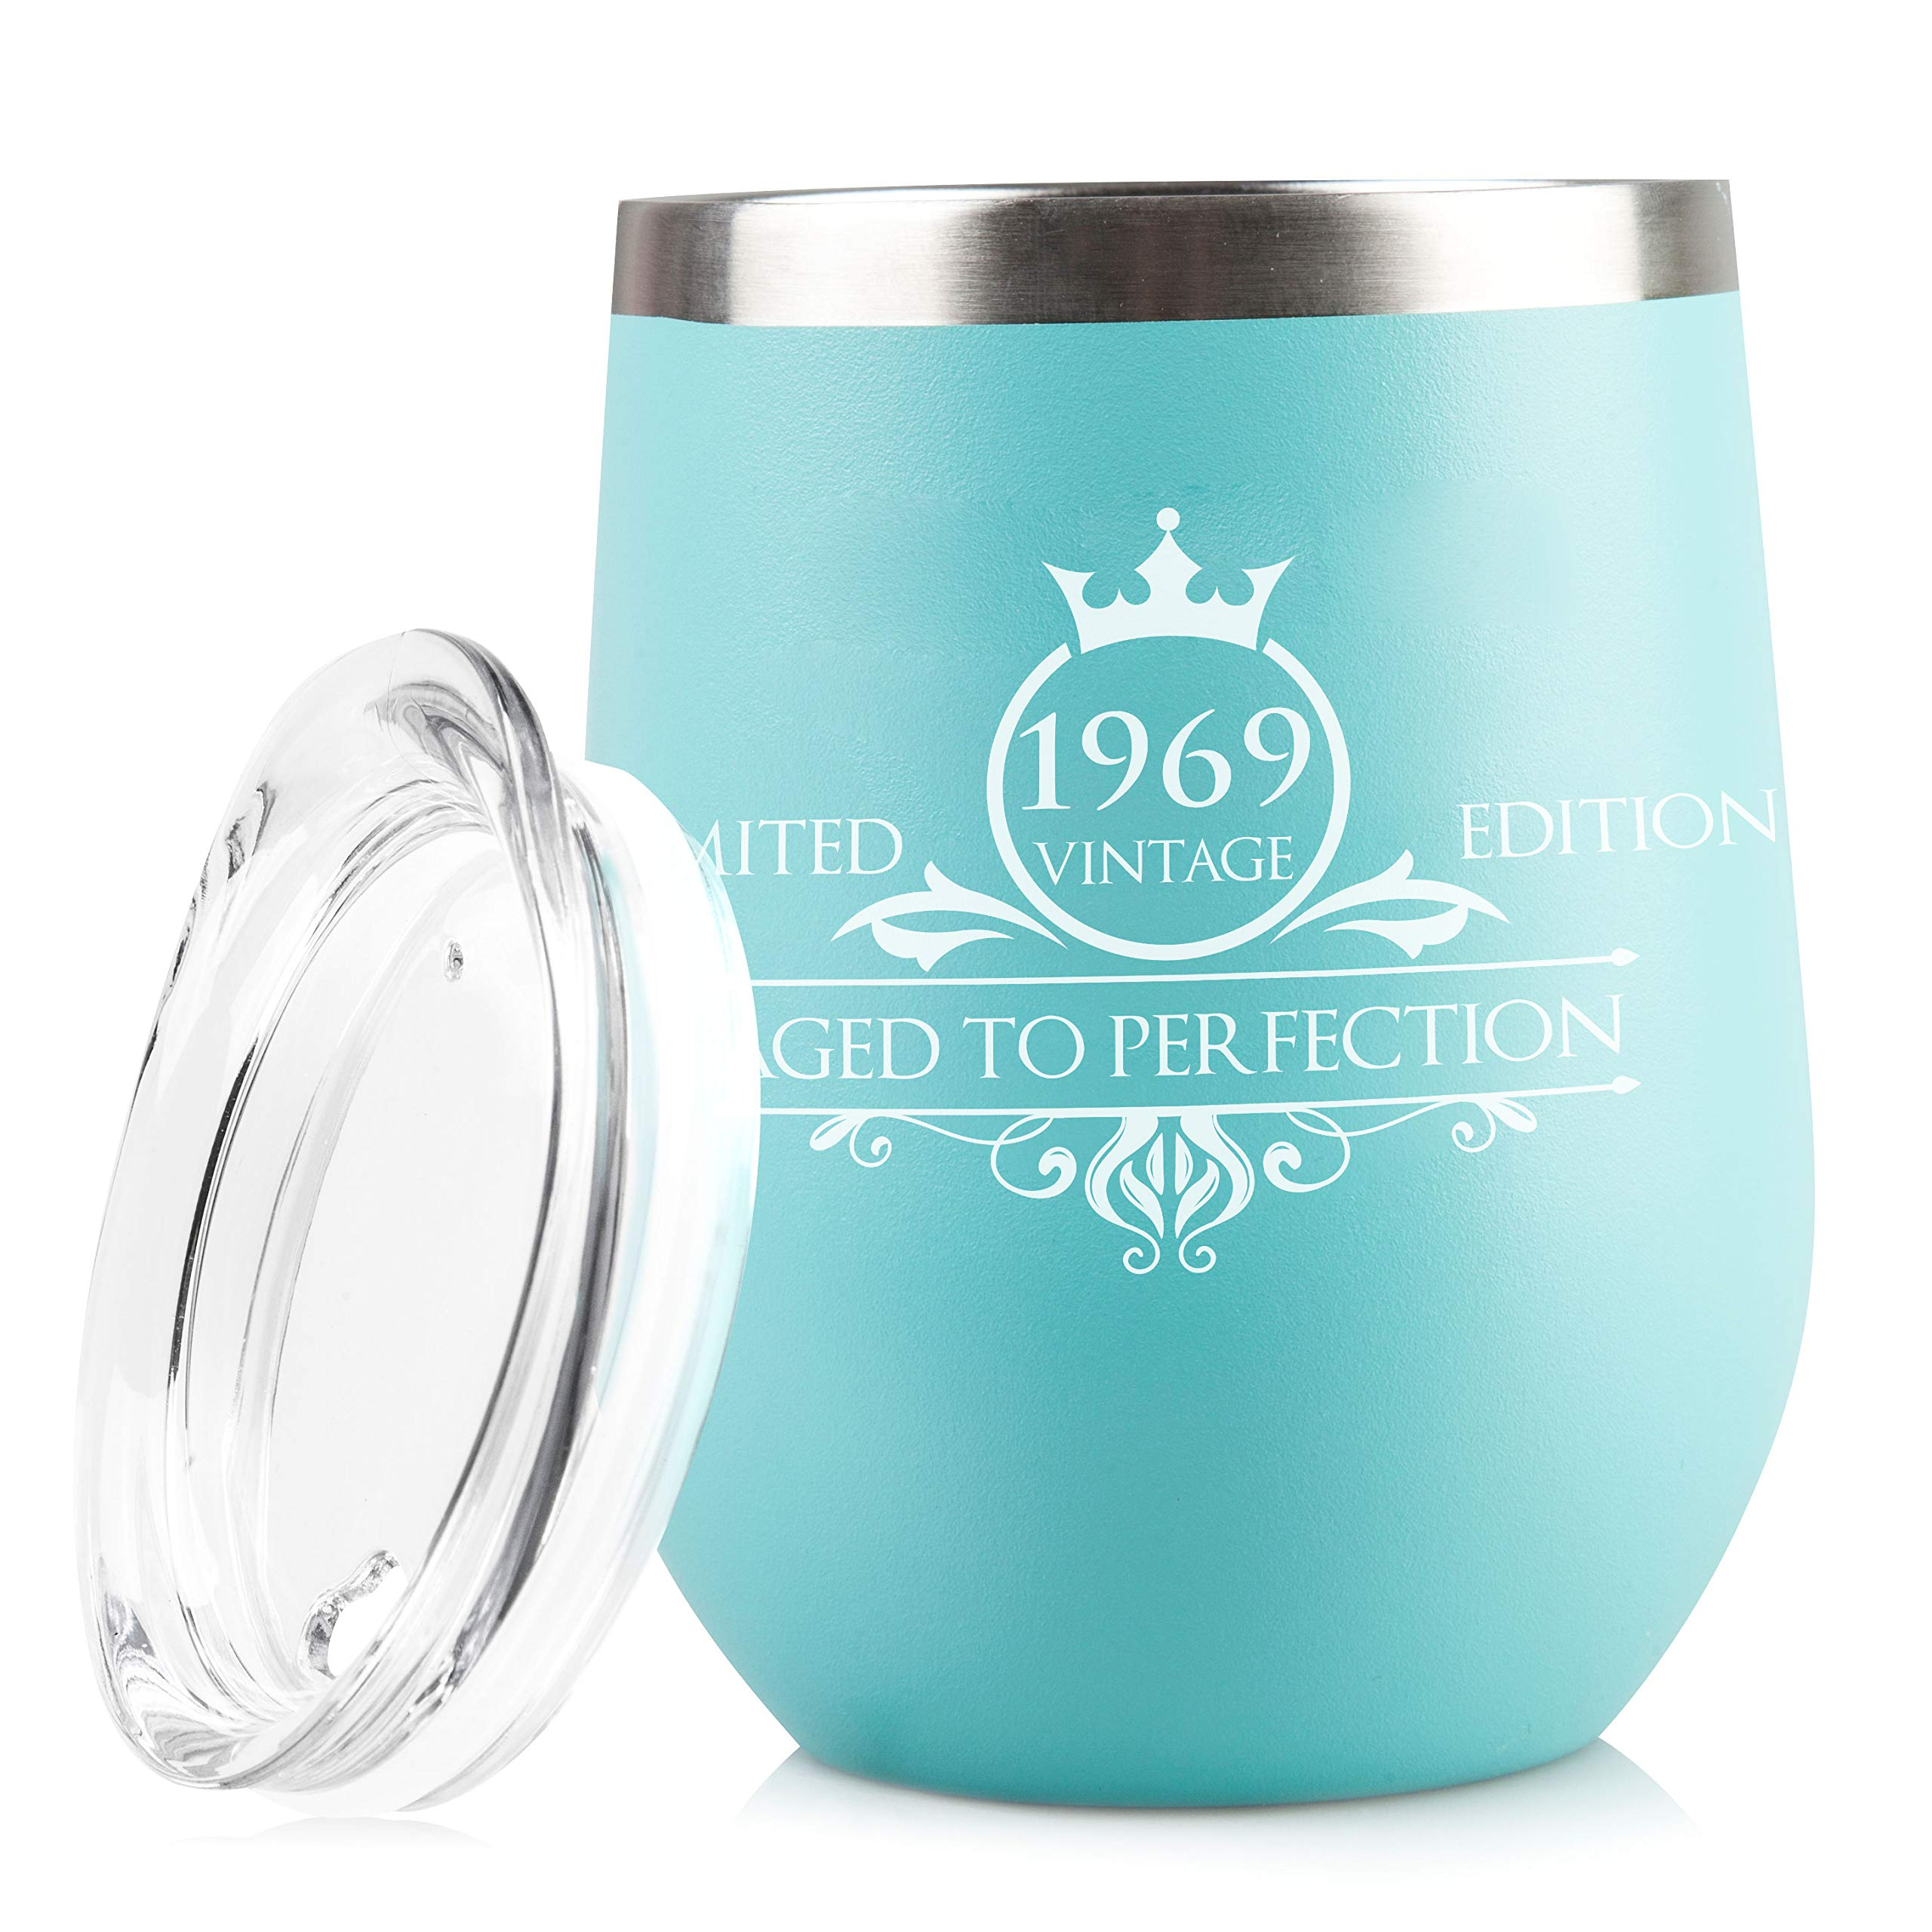 1969 50th Birthday Gifts for Women Men Tumbler | Vintage Anniversary Gift Ideas for Mom Dad Husband Wife | 50 Year Old Party Decorations Supplies for Him Her | 12 oz Stainless Steel Insulated Cups